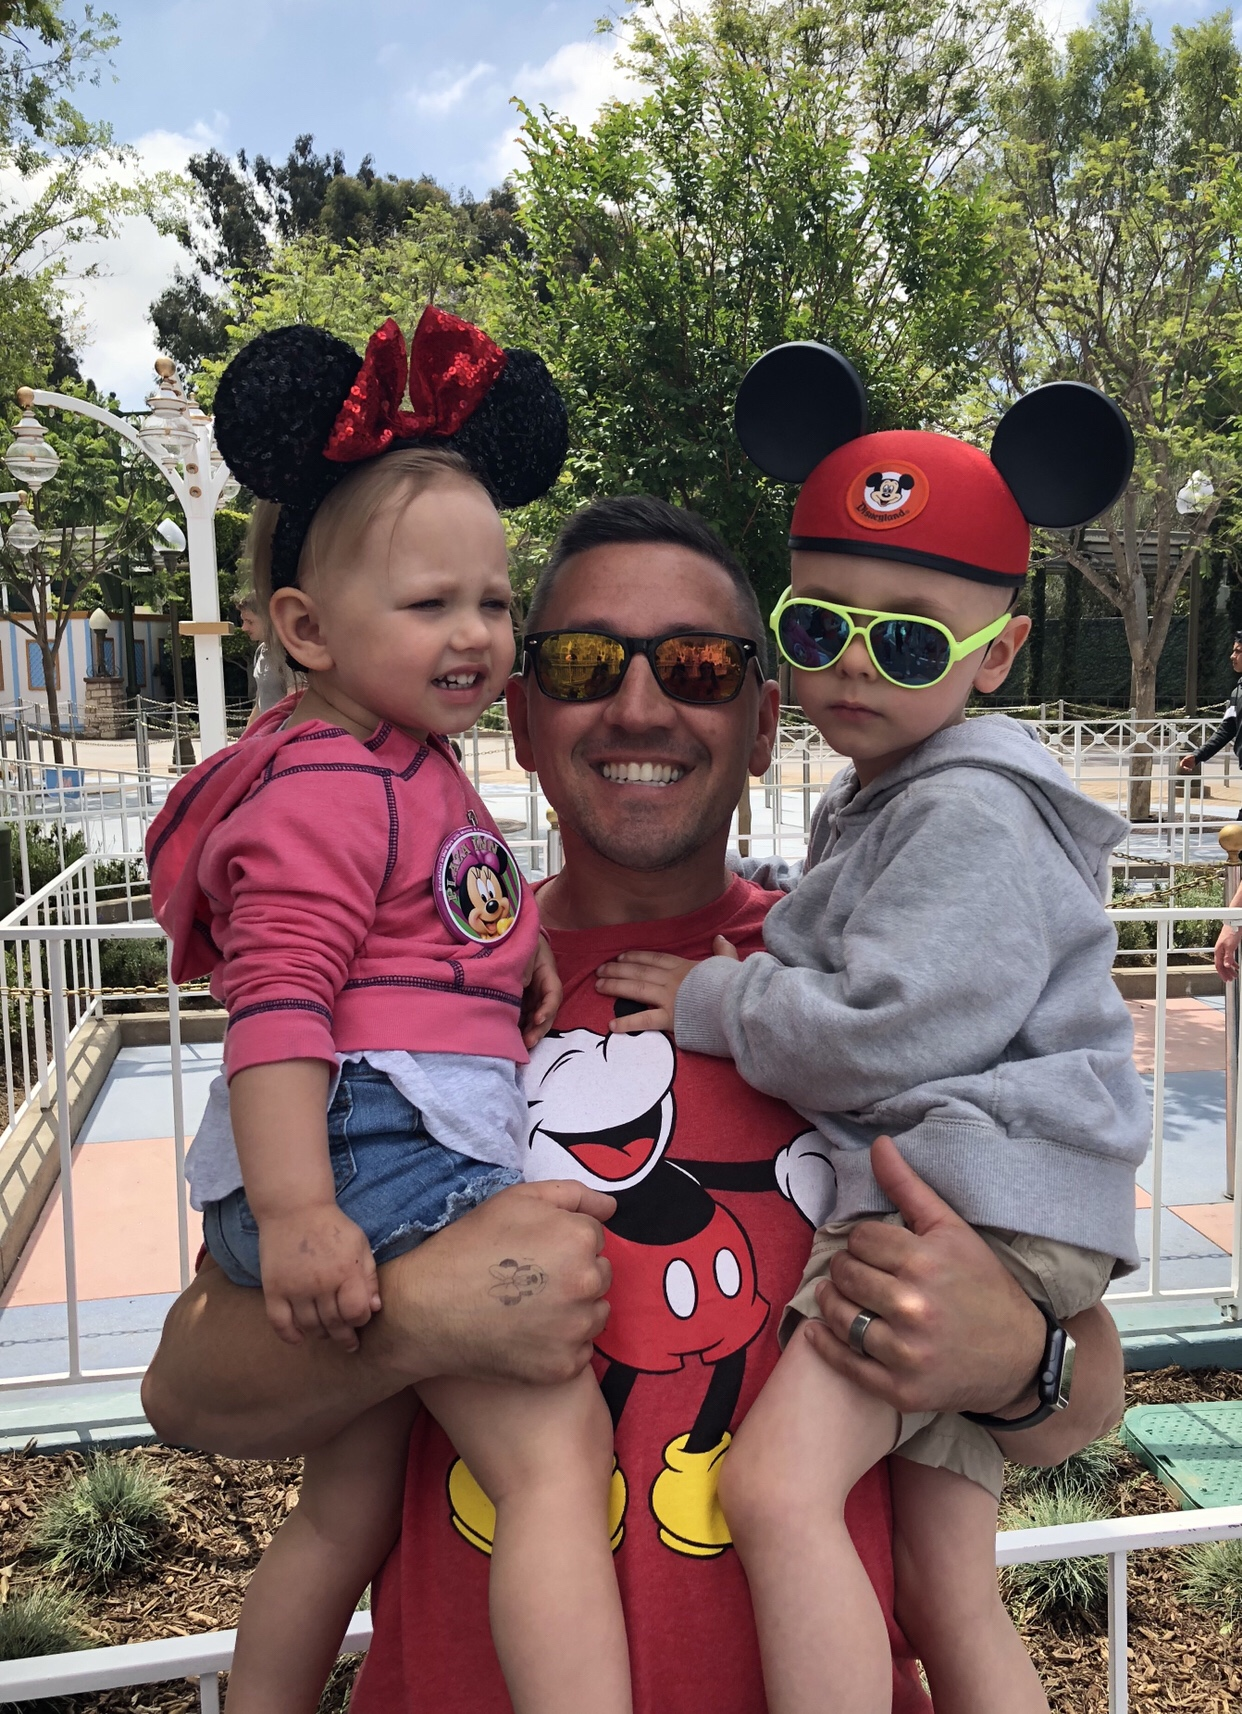 dad and the kids on our first trip to Disneyland